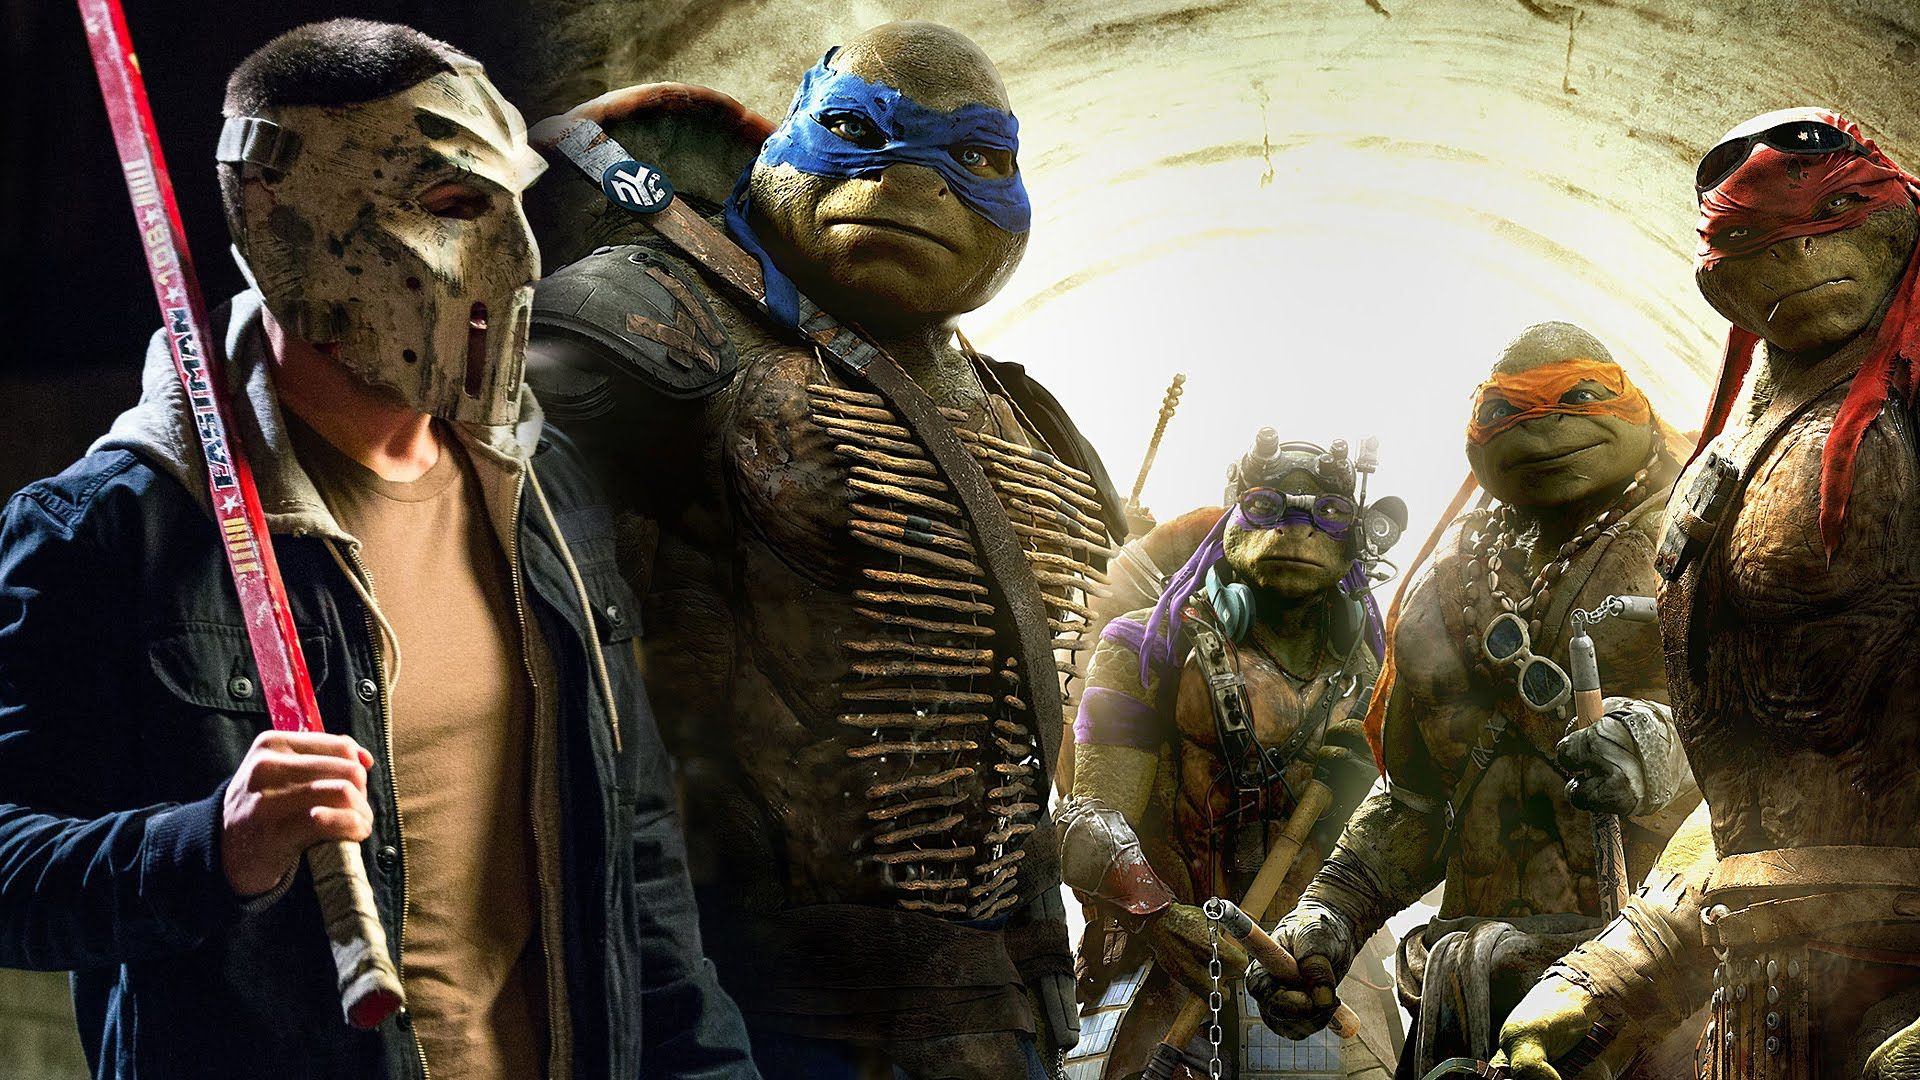 Teenage Mutant Ninja Turtles: Out of the Shadows Free